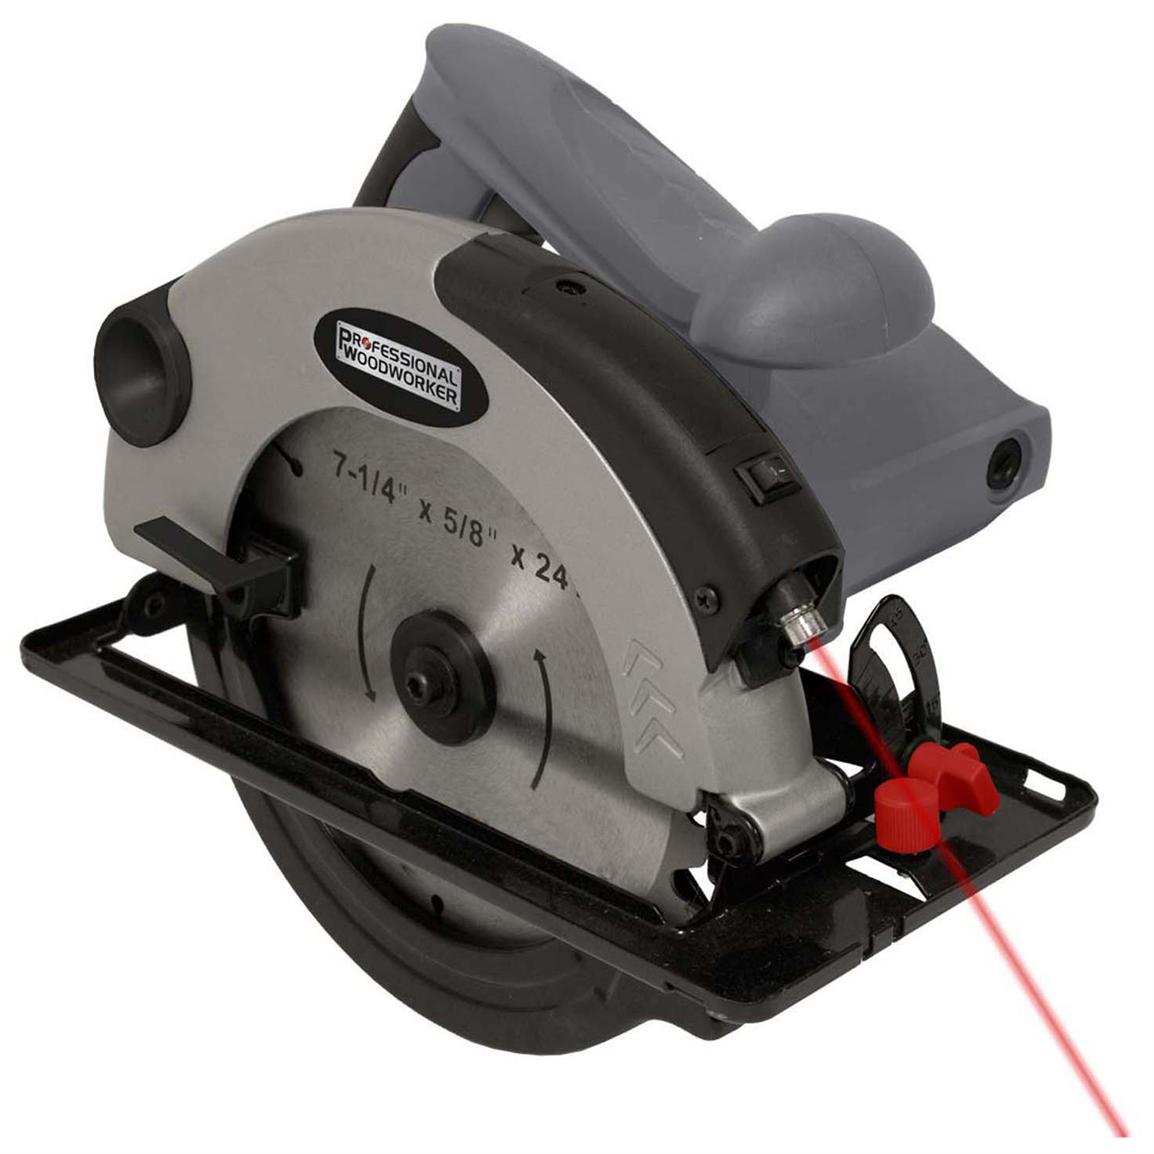 Professional Woodworker 7 1/4 inch Circular Saw with Laser Guide